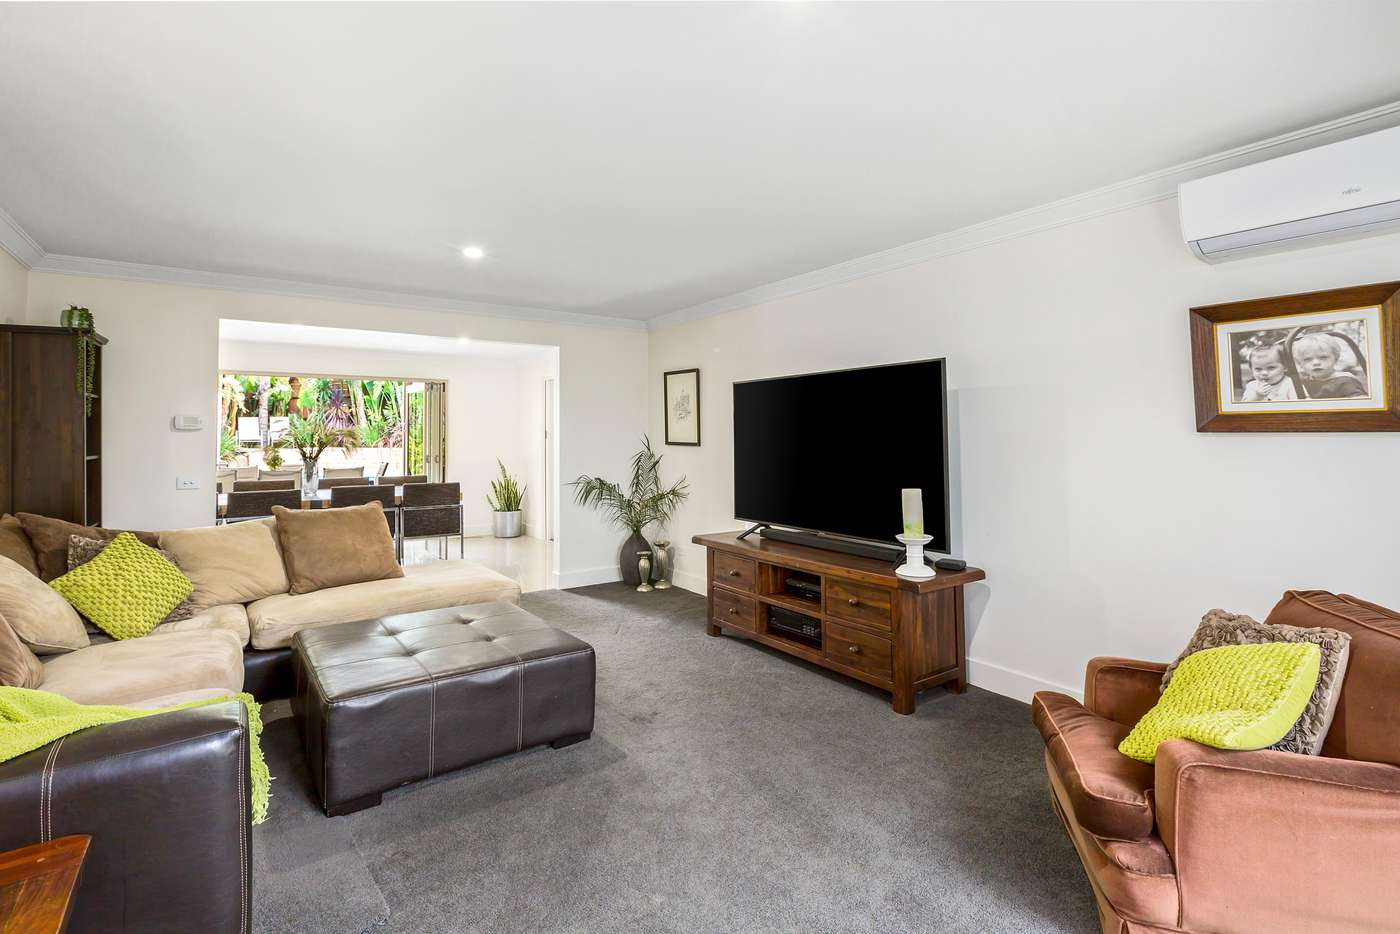 Sixth view of Homely house listing, 12 Rosco Drive, Templestowe VIC 3106